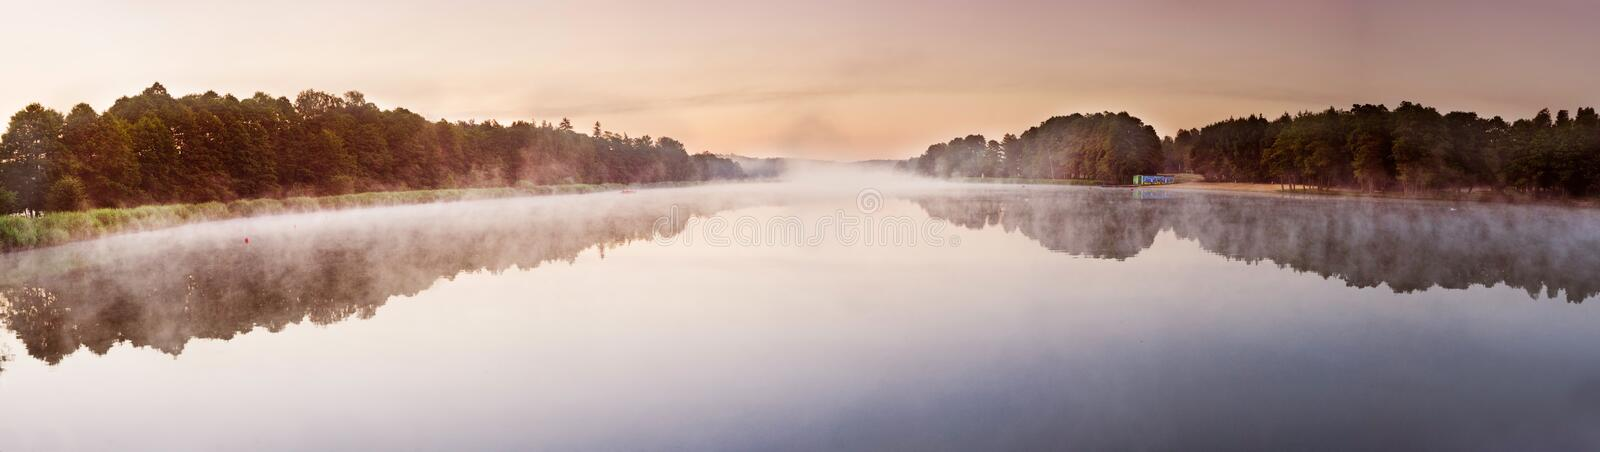 Download Sunrise Over The Misty Lake Panorama Stock Photo - Image: 32212406